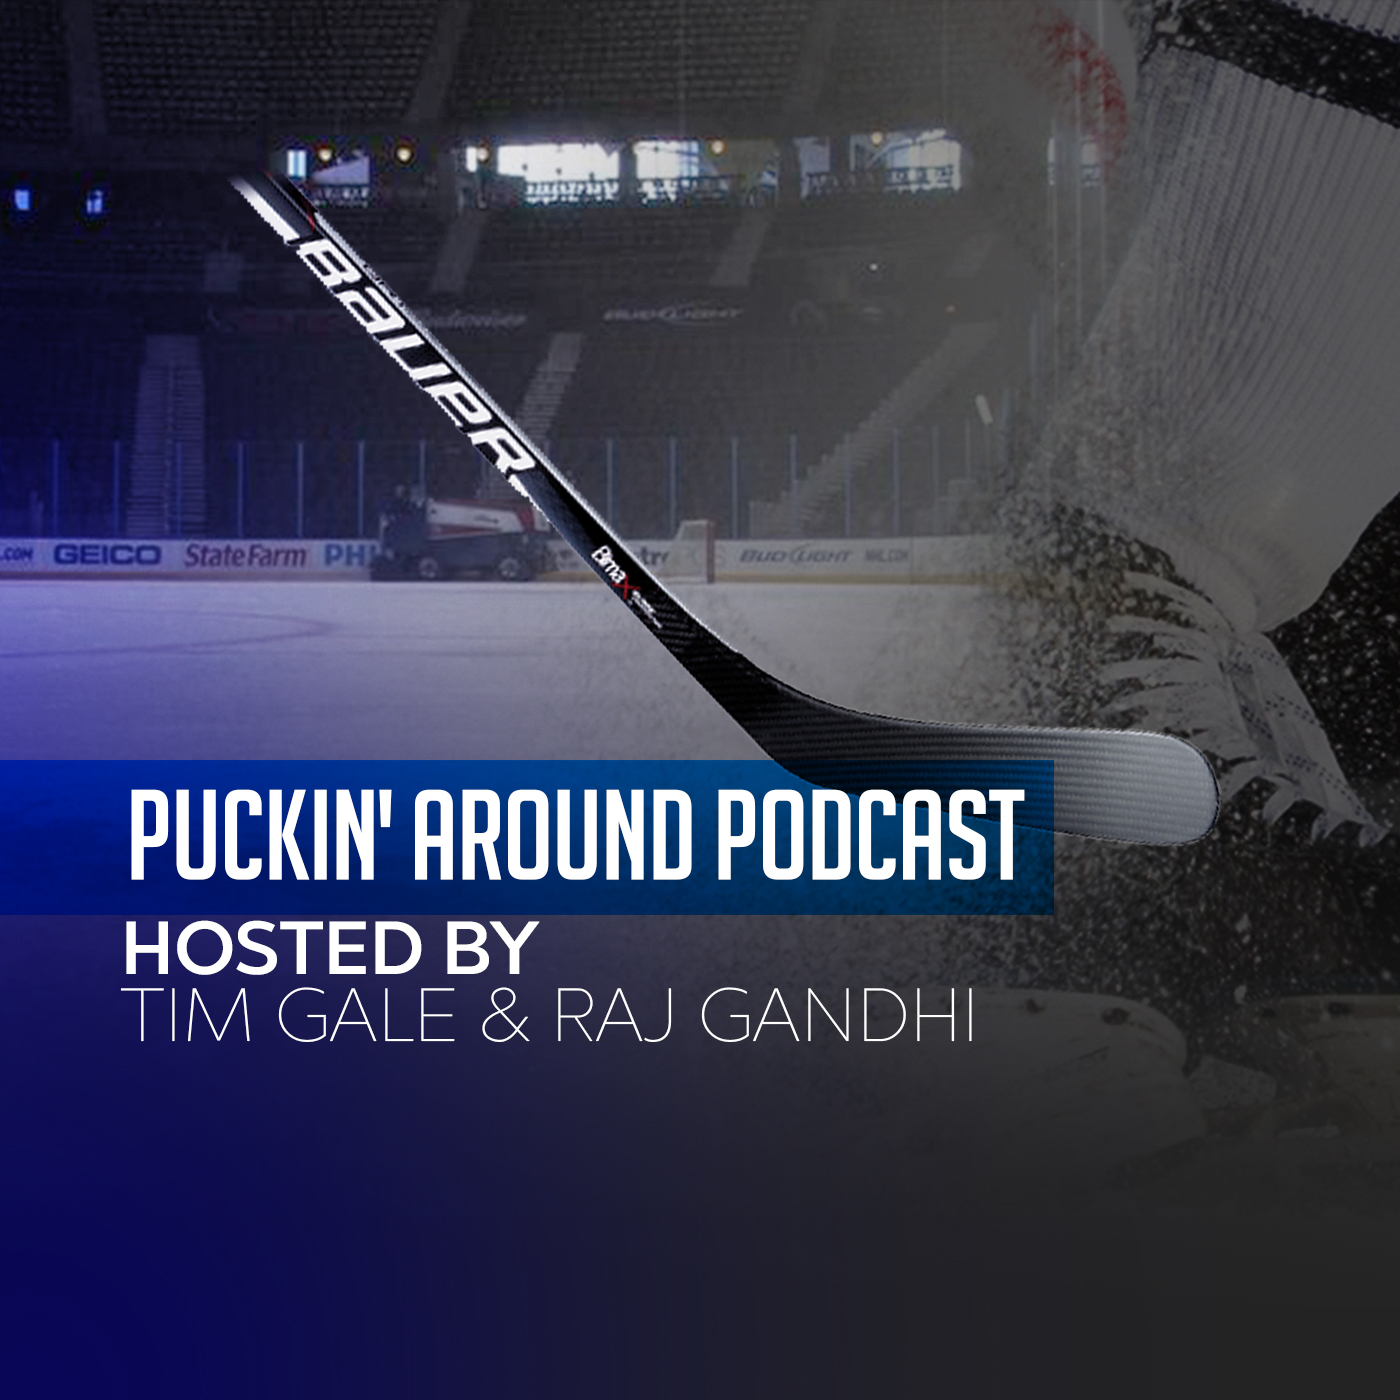 Puckin' Around Podcast